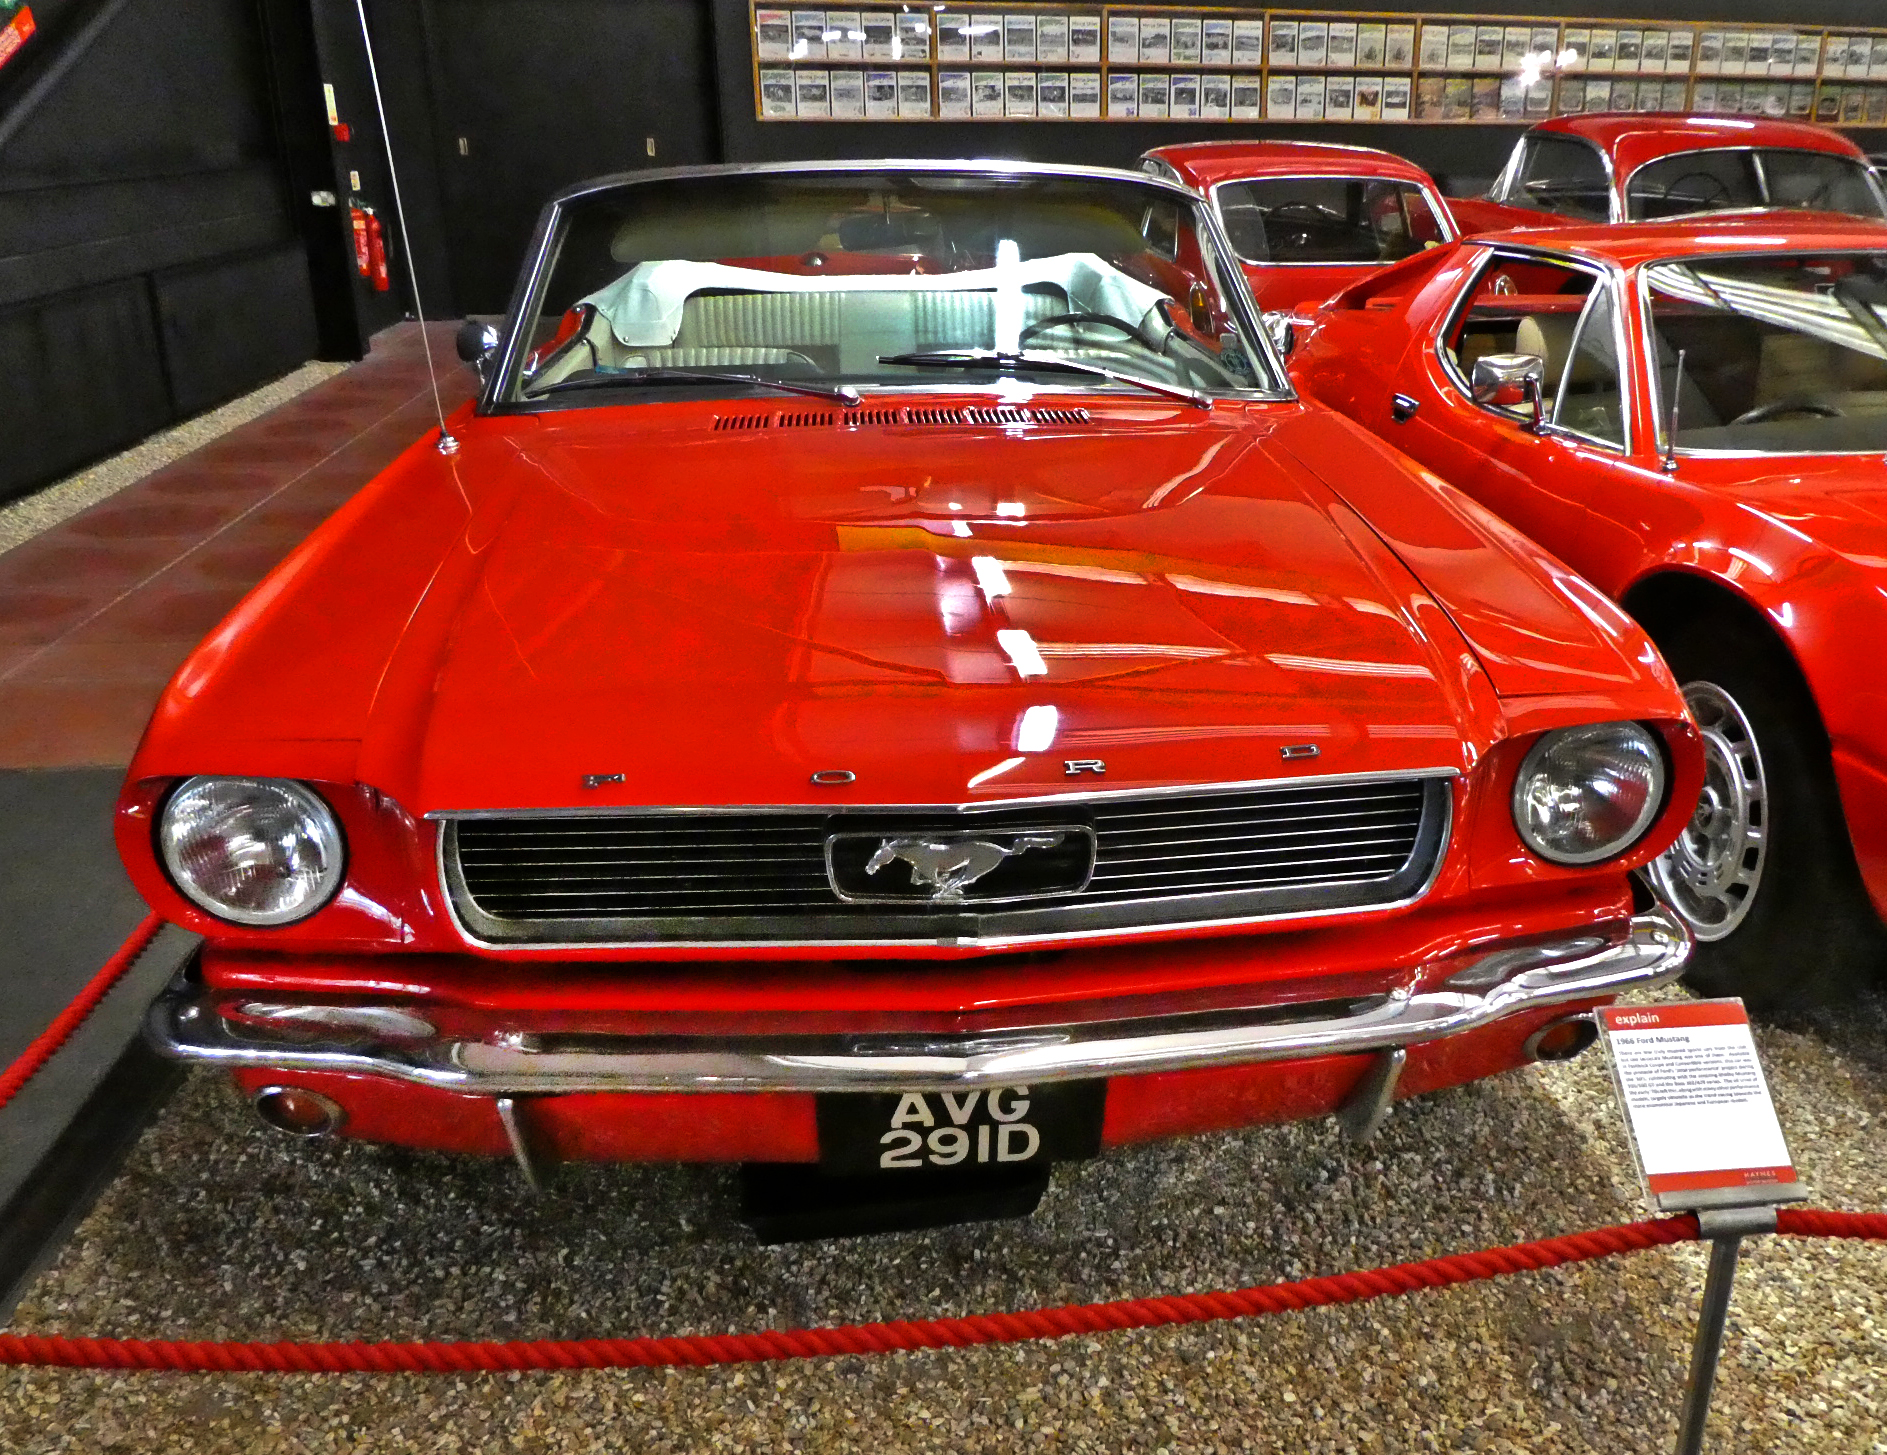 Red Room Ford Mustang front